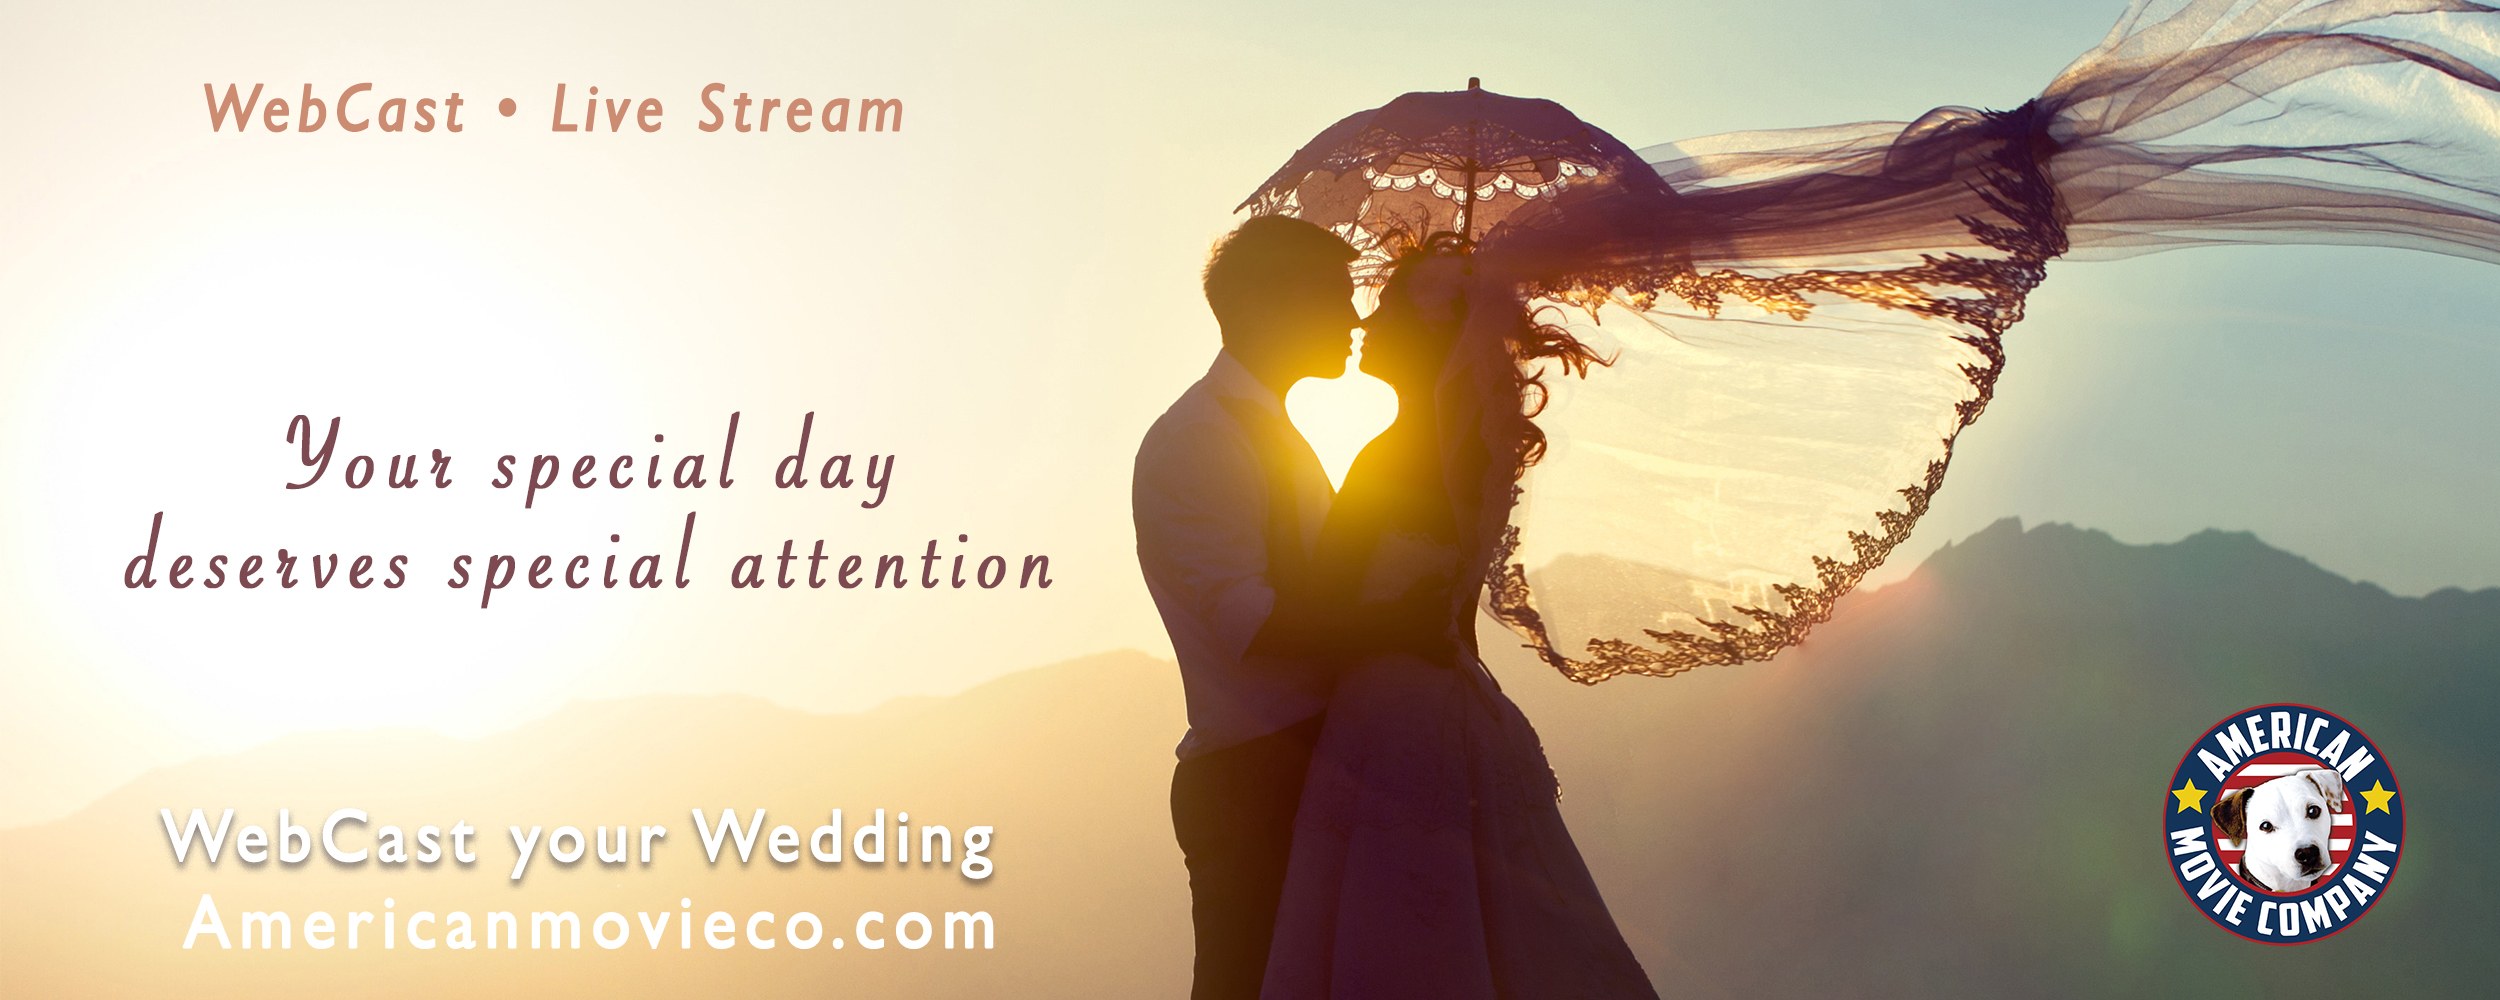 WebCast Live Stream - Wedding